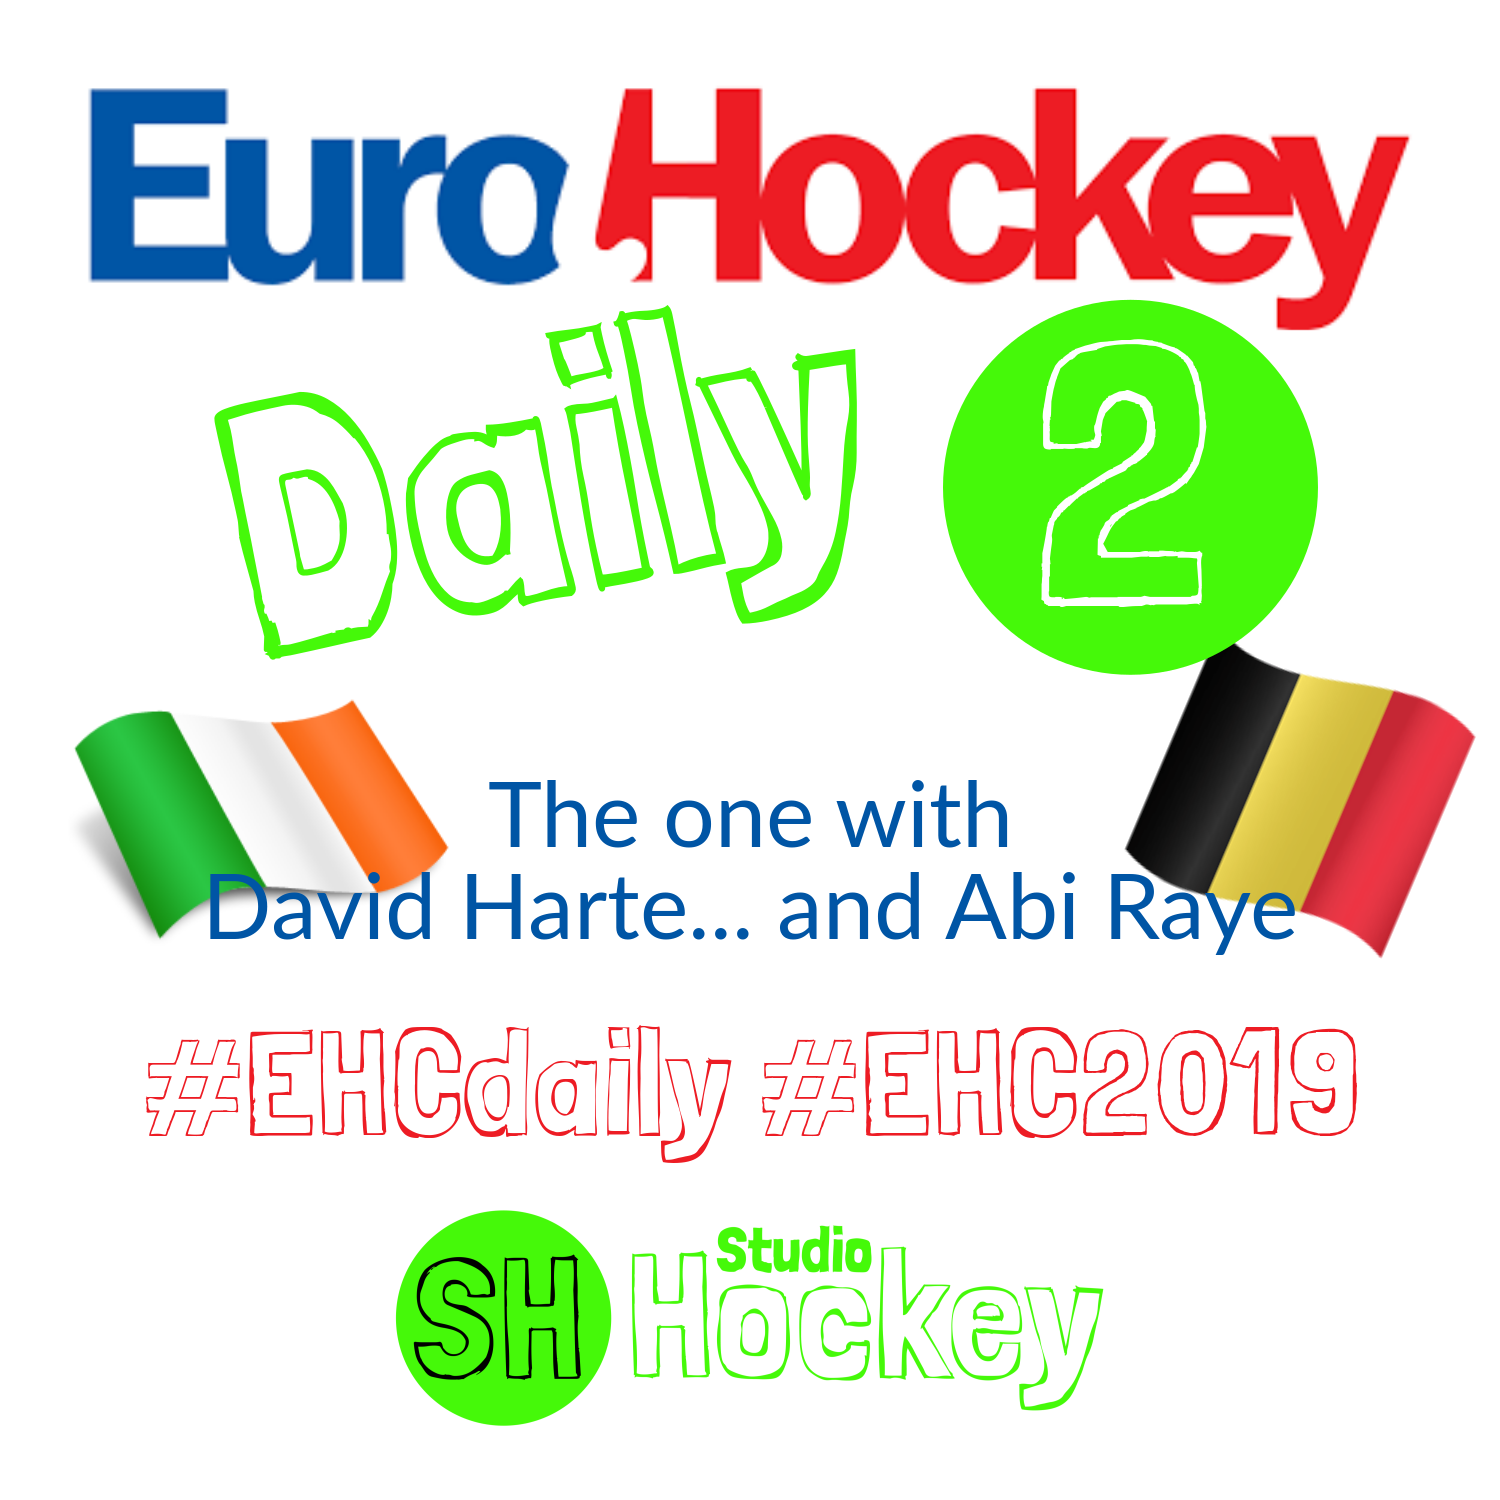 ehcdaily_2